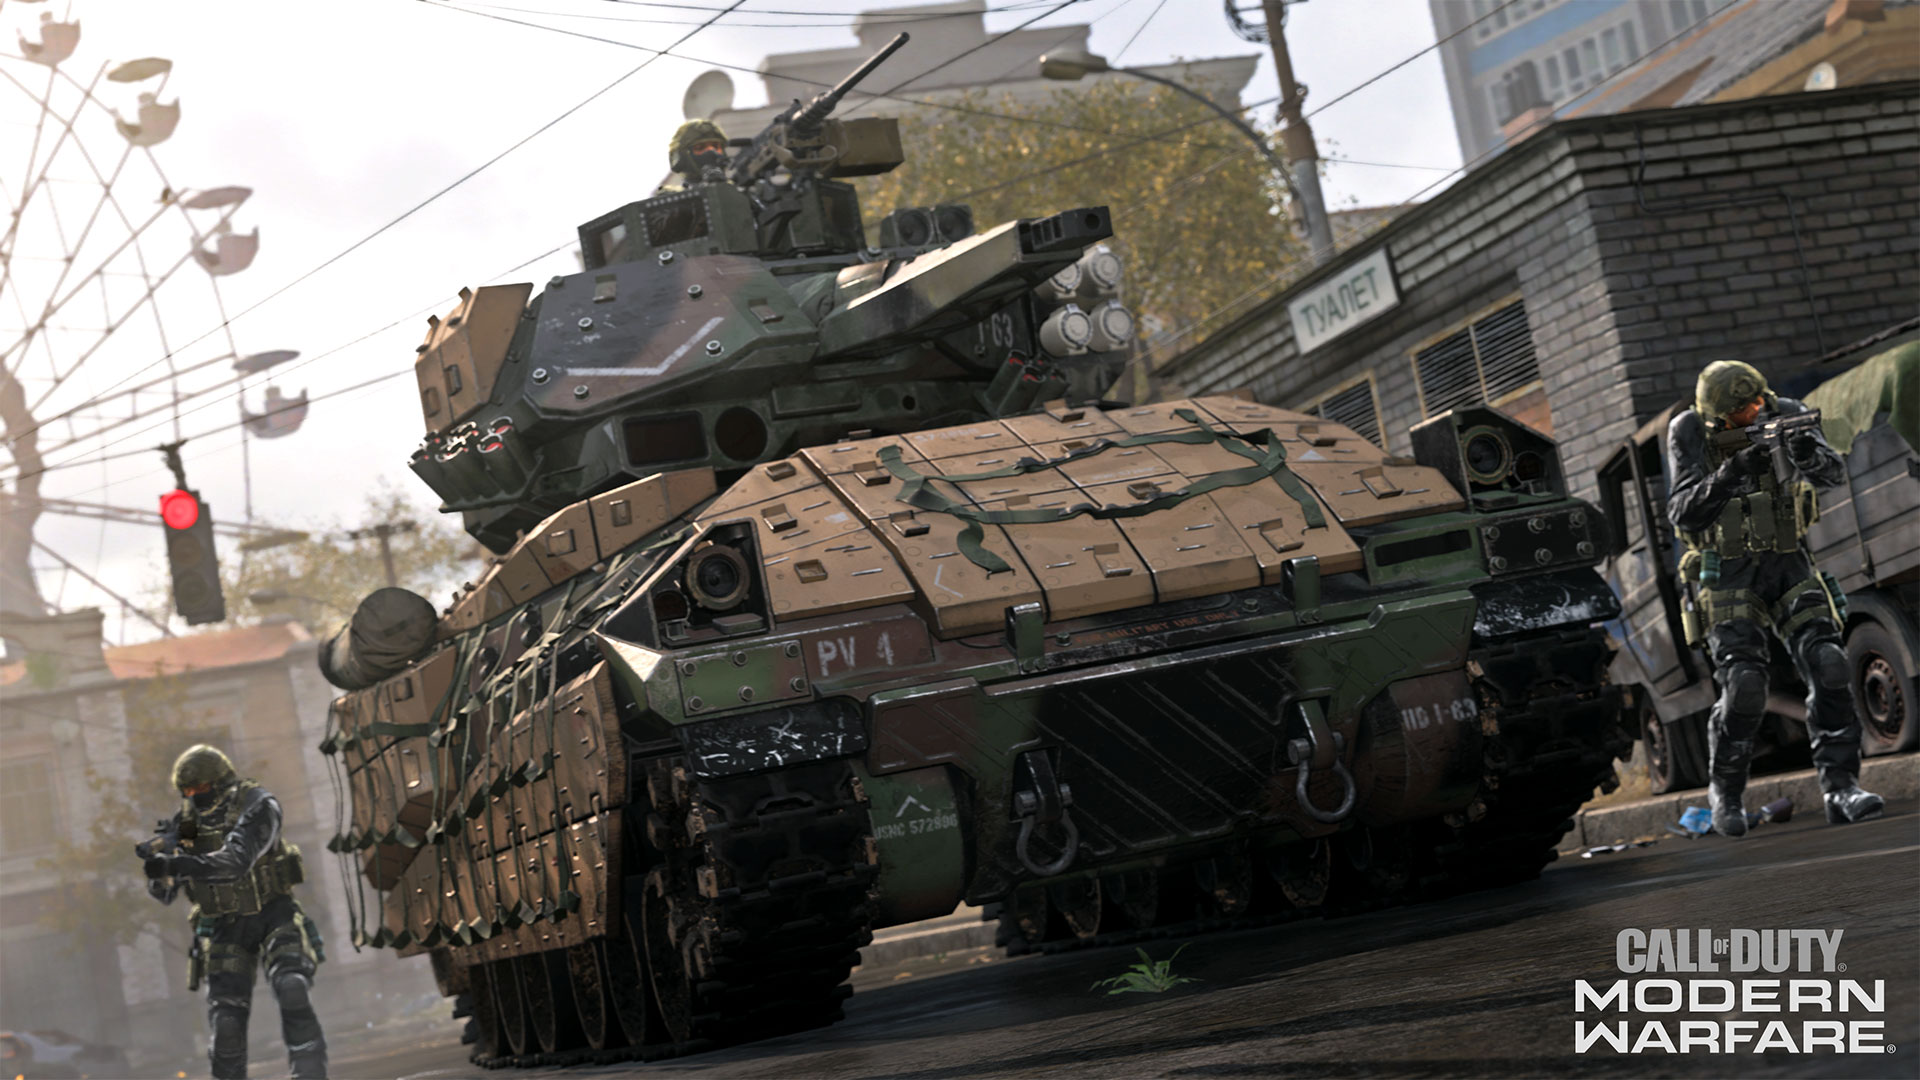 Call Of Duty Modern Warfare Pc System Requirements Demand A Whole